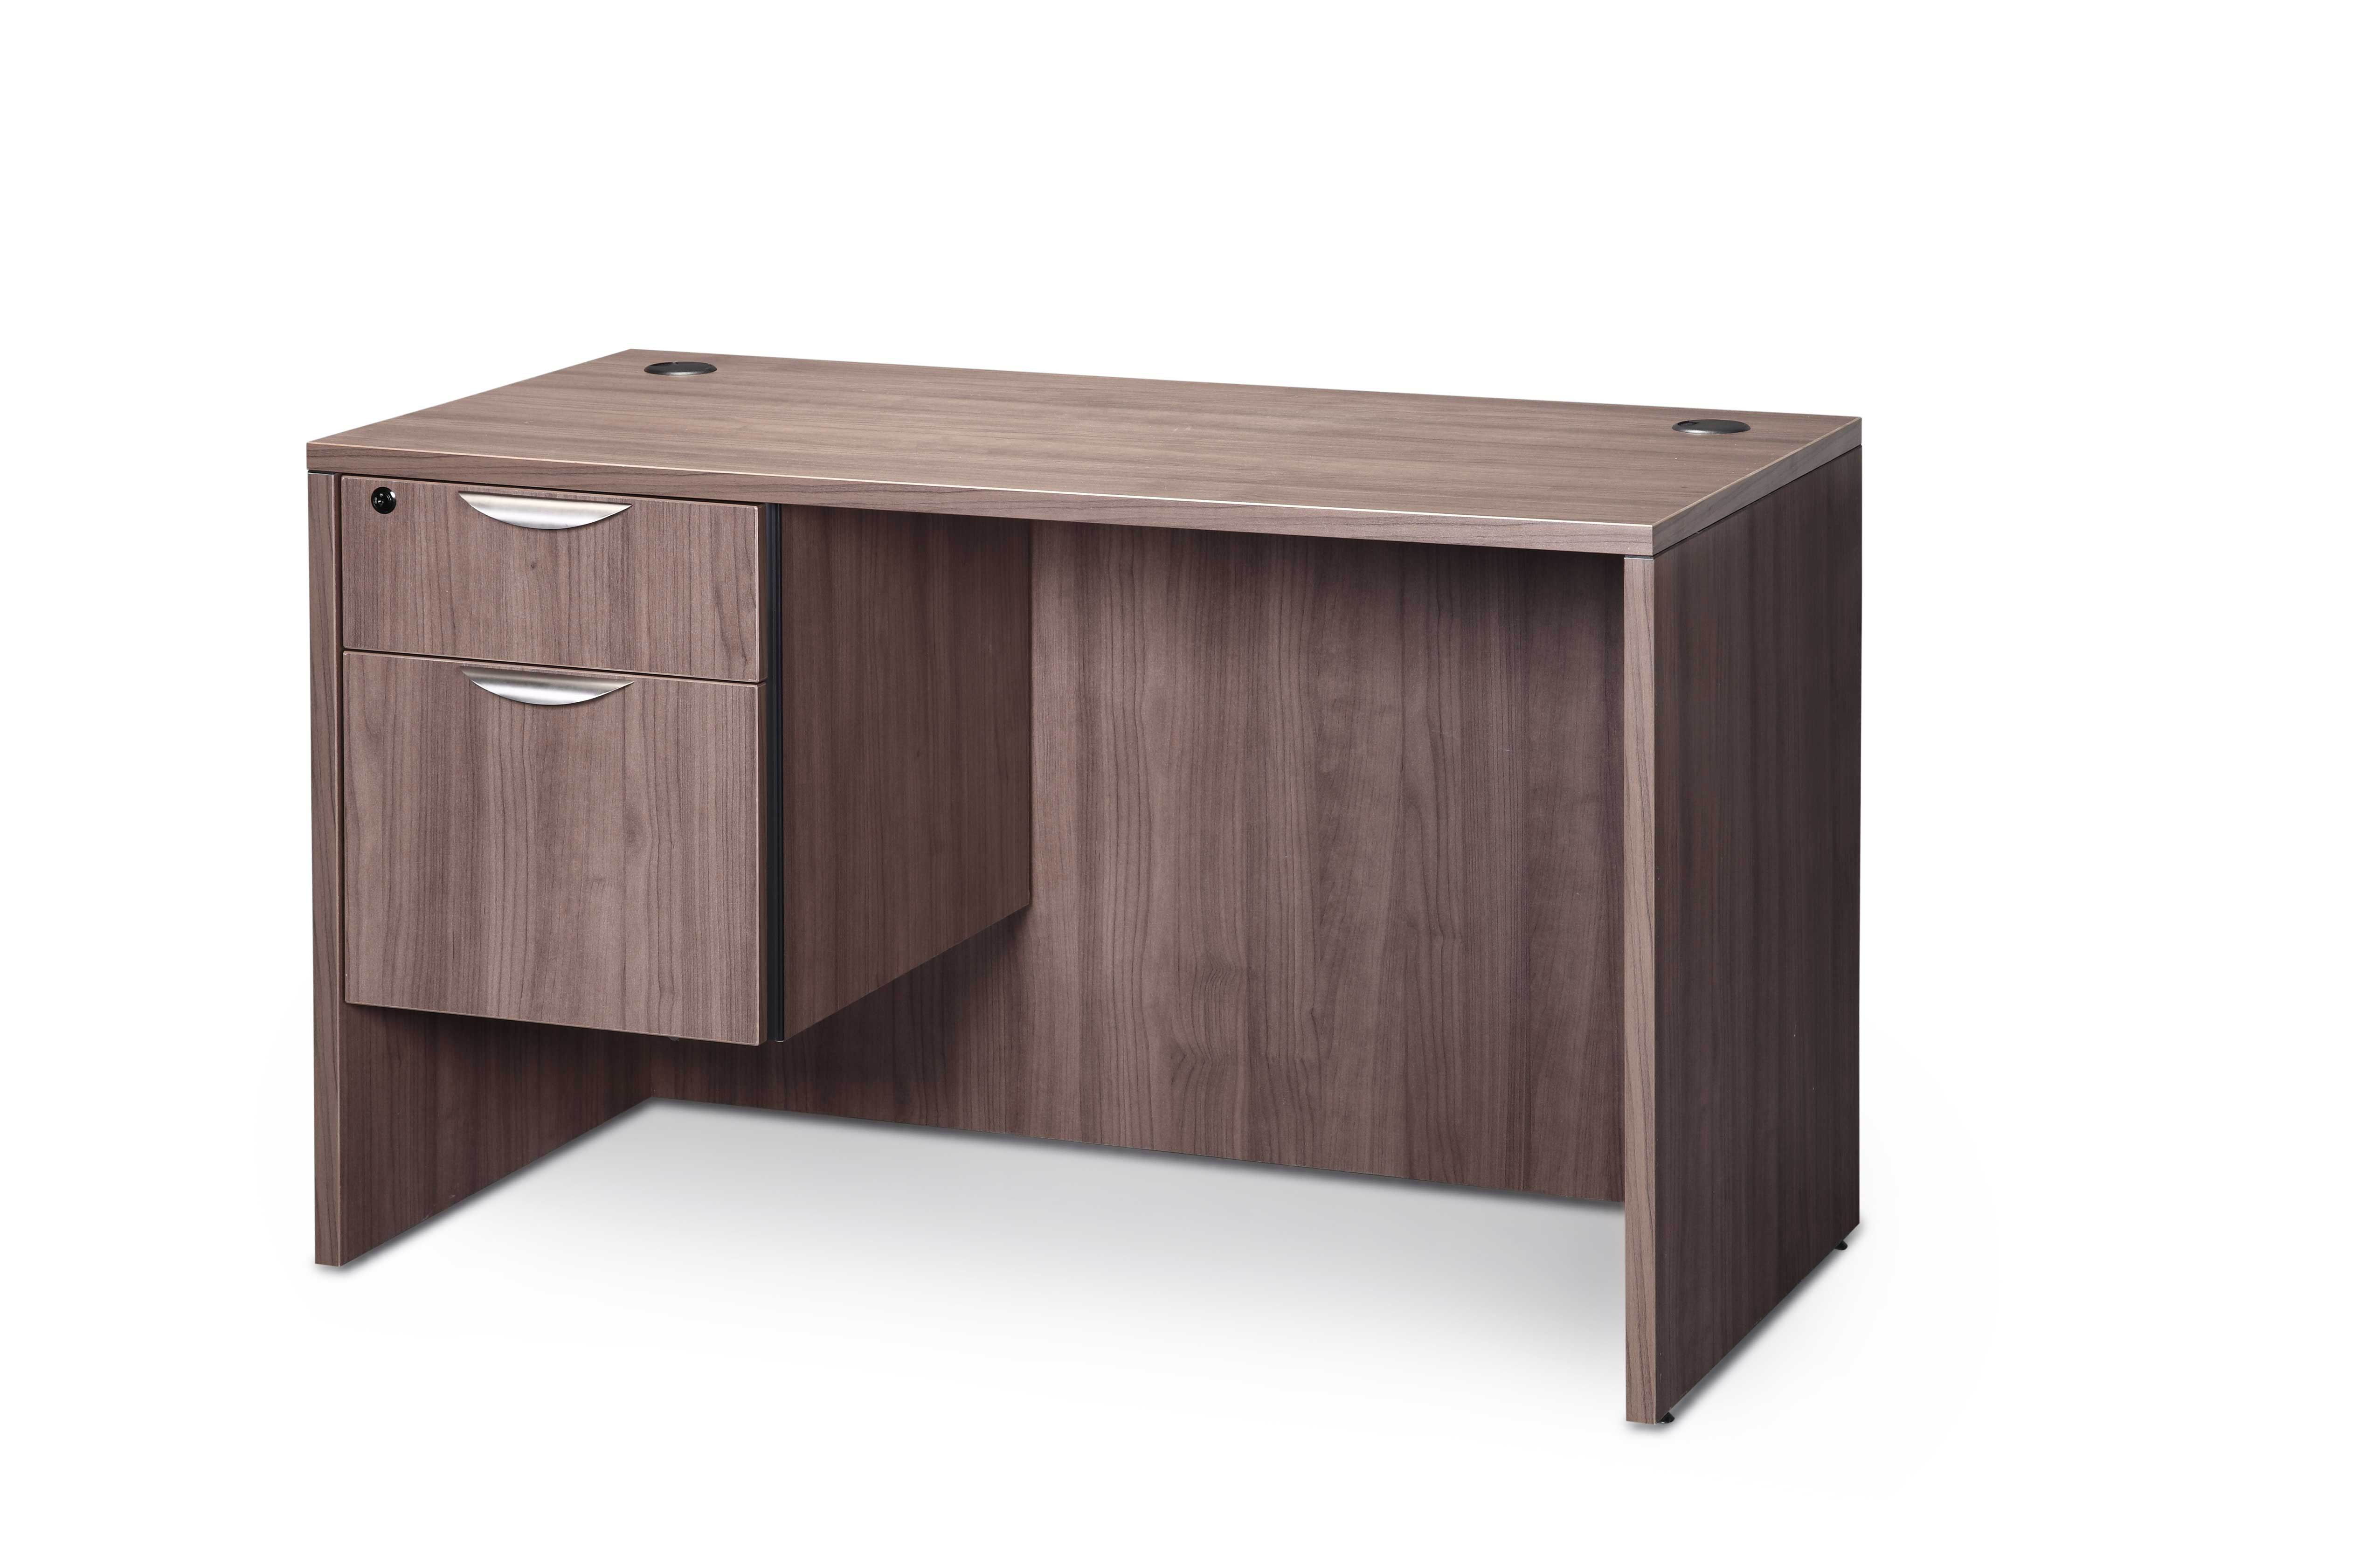 Harmony 30x60 Desk with pedestal